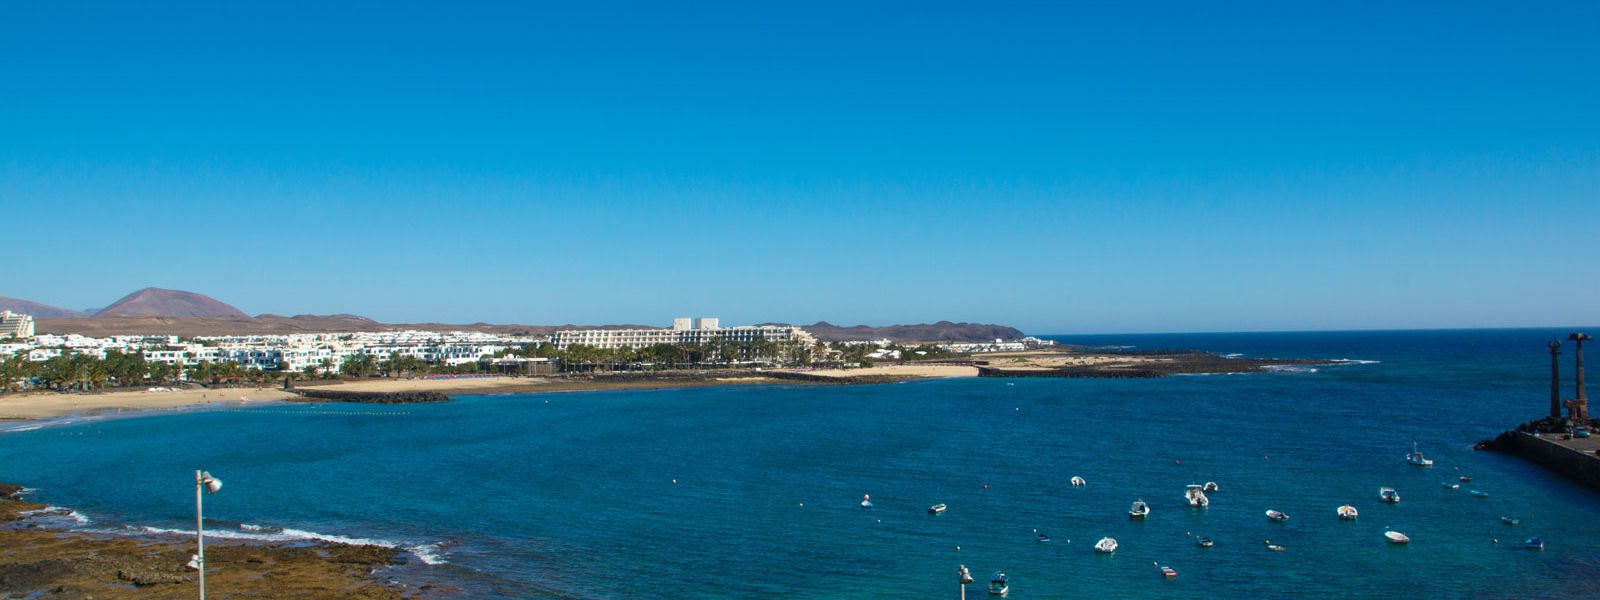 Familie appartementen in costa teguise